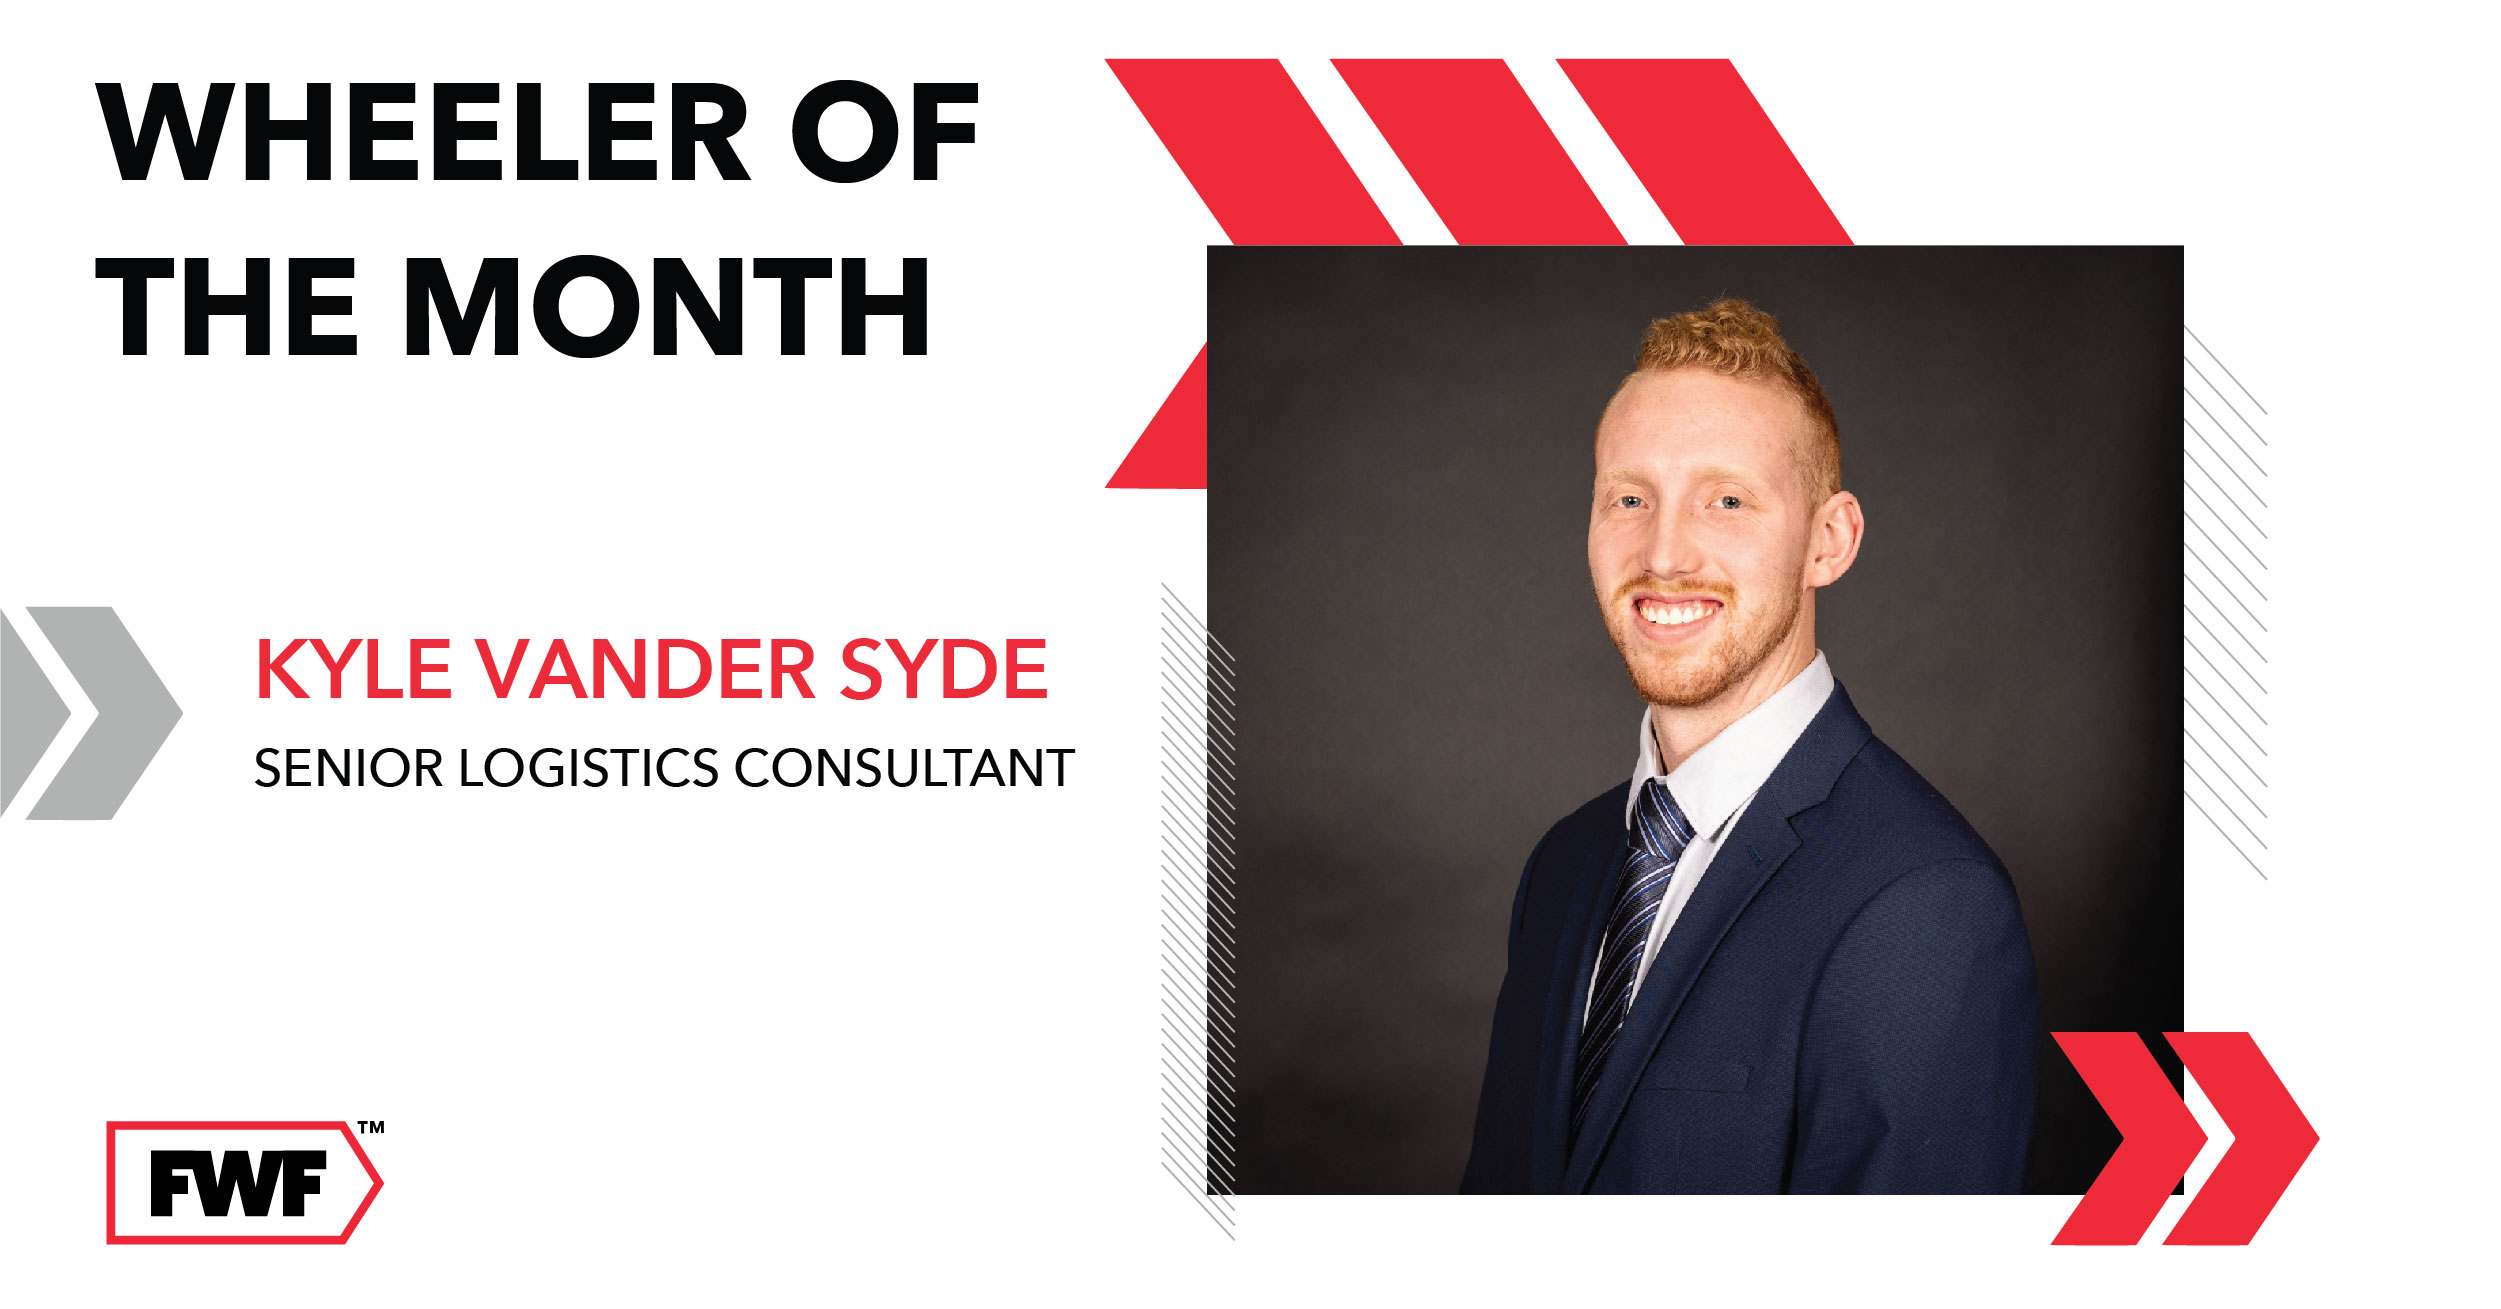 Kyle Vander Syde is Fifth Wheel Freight's Wheeler of the Month